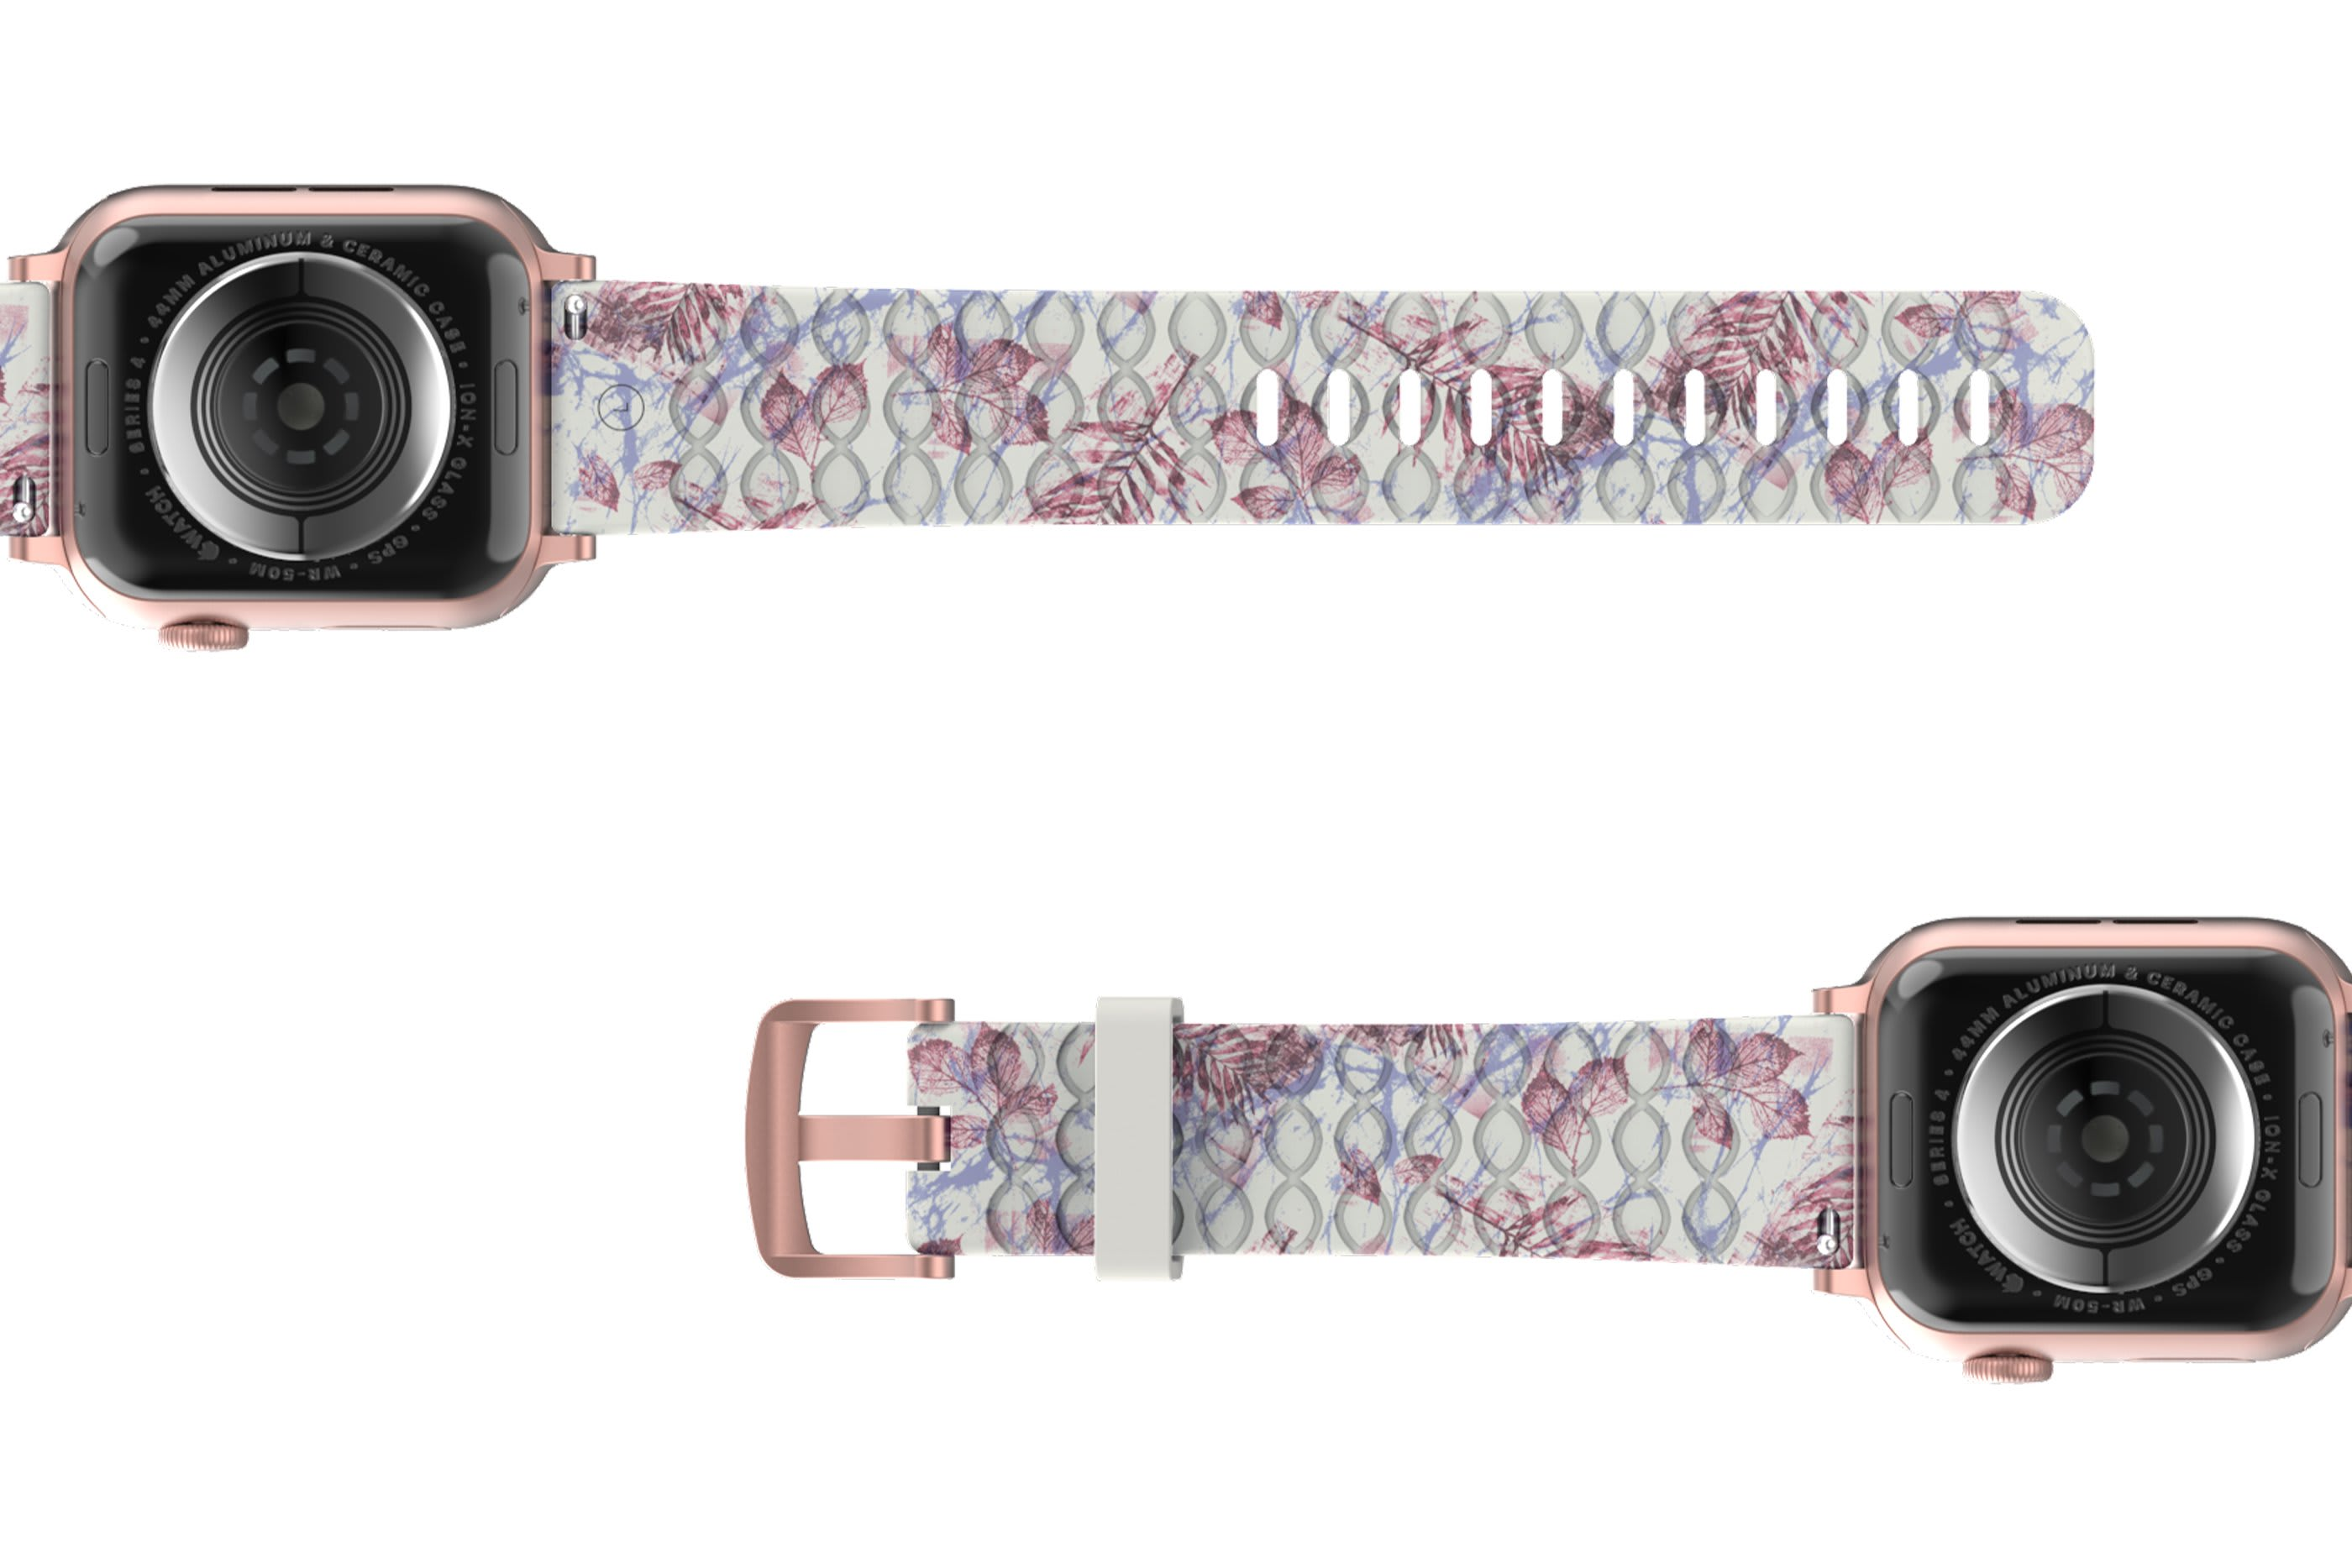 Breeze Apple Watch Band with gray hardware viewed bottom up